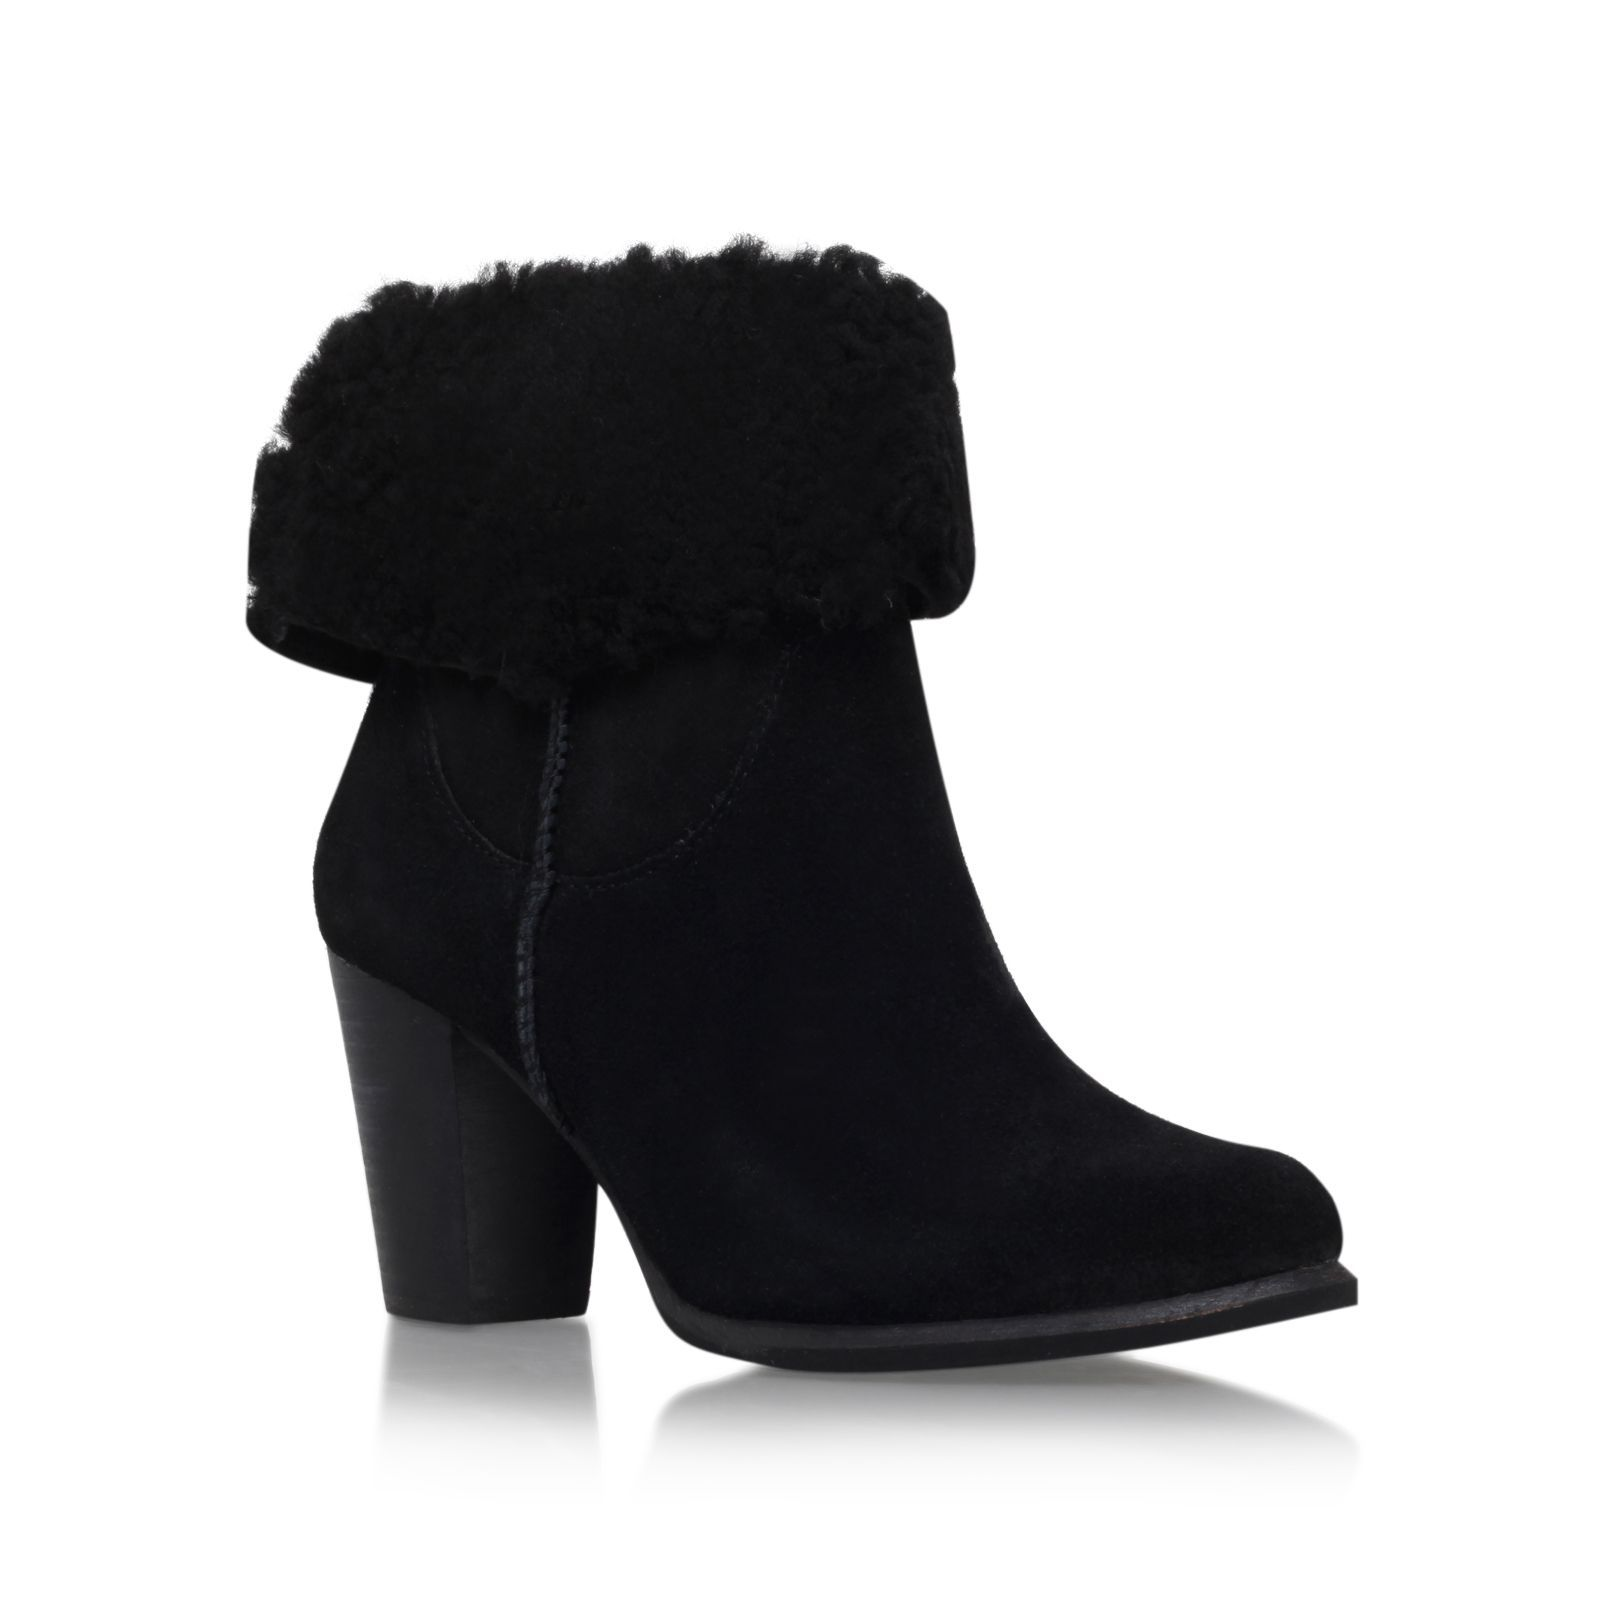 UGG Australia Charlee high heel fur cuff ankle boots, Ankle BootsHigh and  above)LeatherUpper – Leather, Lining – Leather, Sole – SyntheticCasualAnkle  high ...